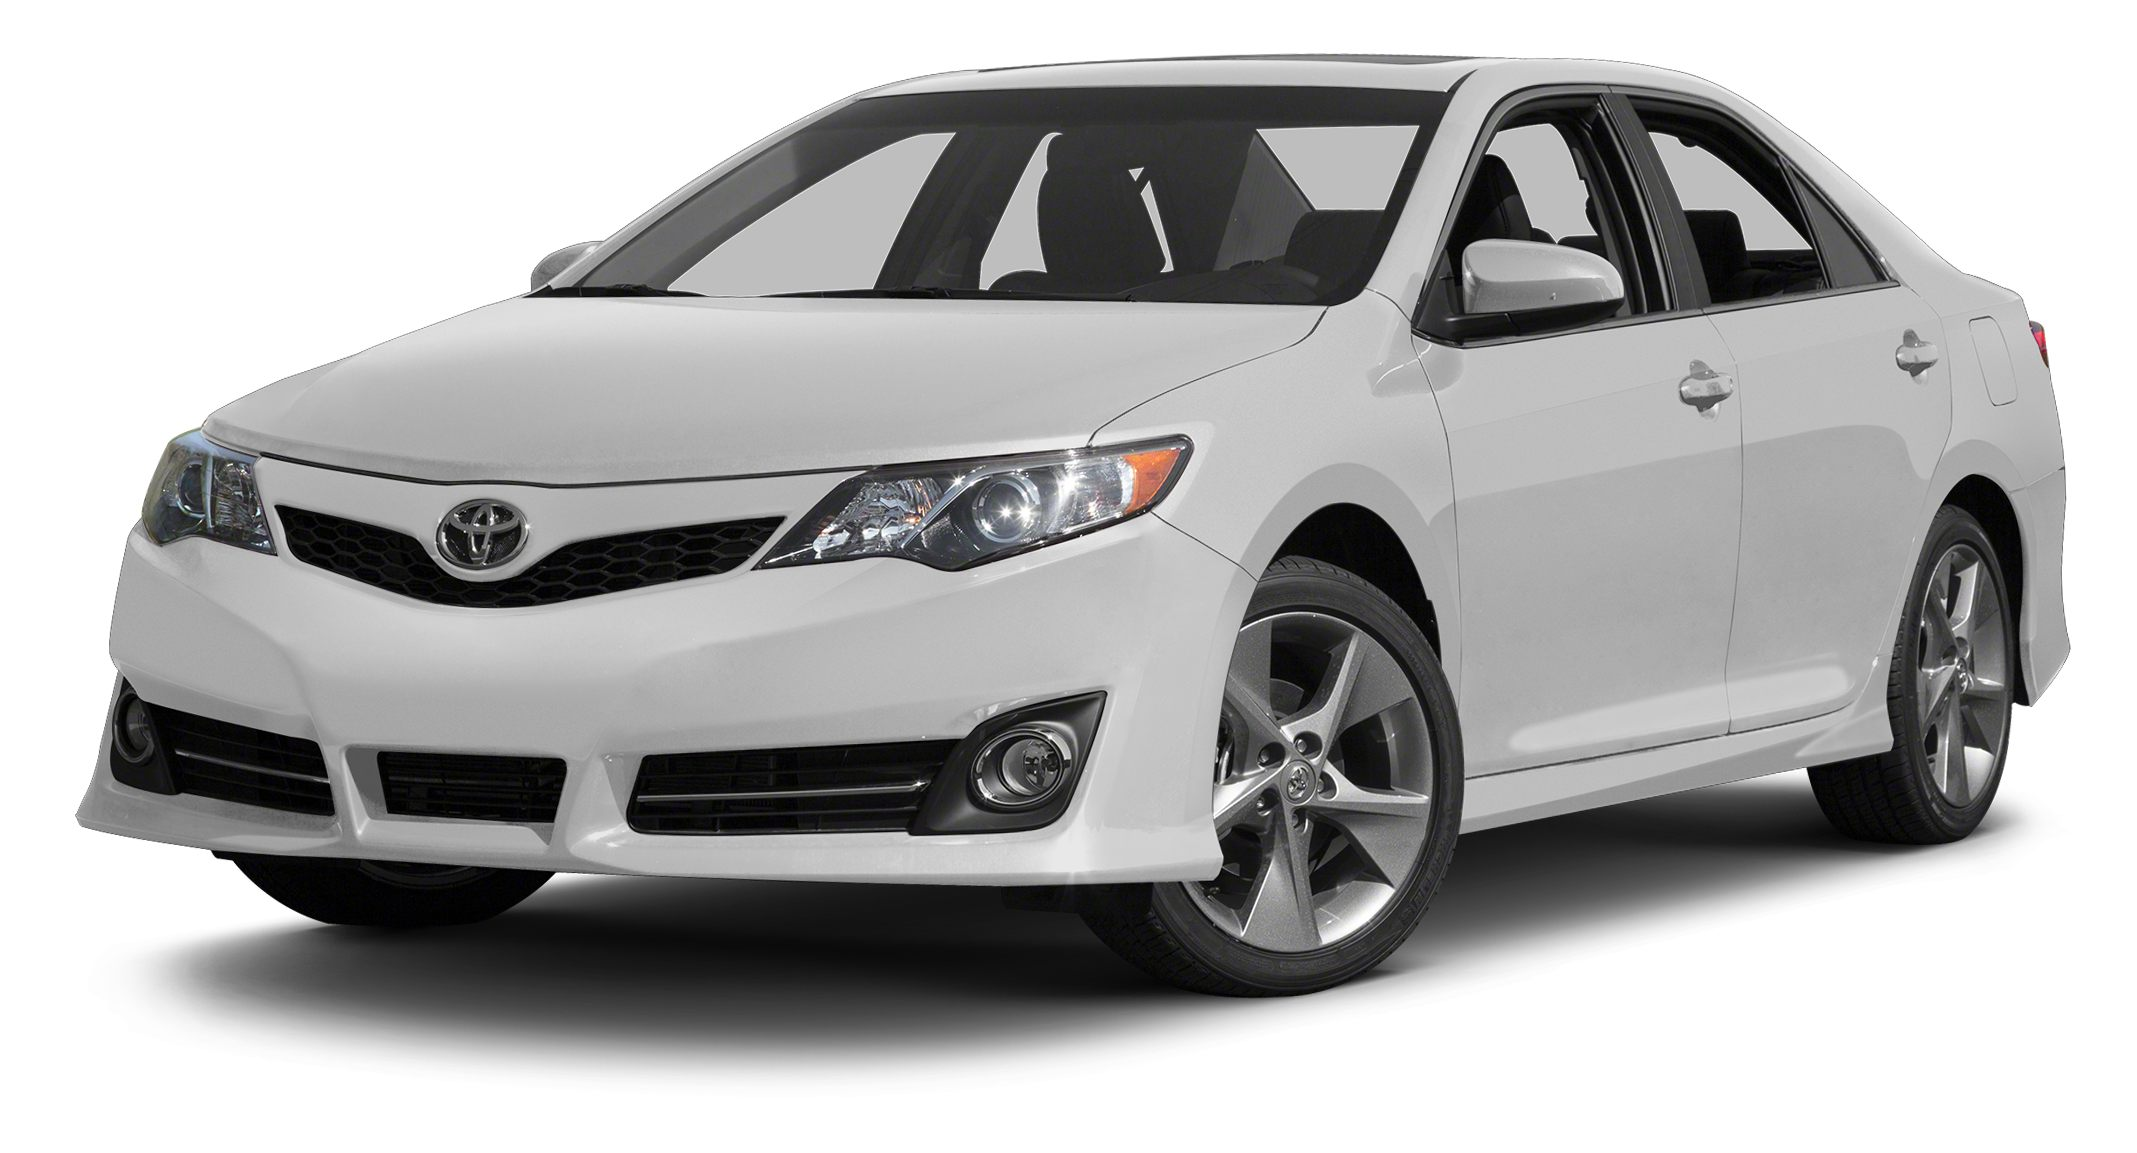 2012 Toyota Camry SE CARFAX 1-Owner PRICE DROP FROM 18377 EPA 35 MPG Hwy25 MPG City SE trim